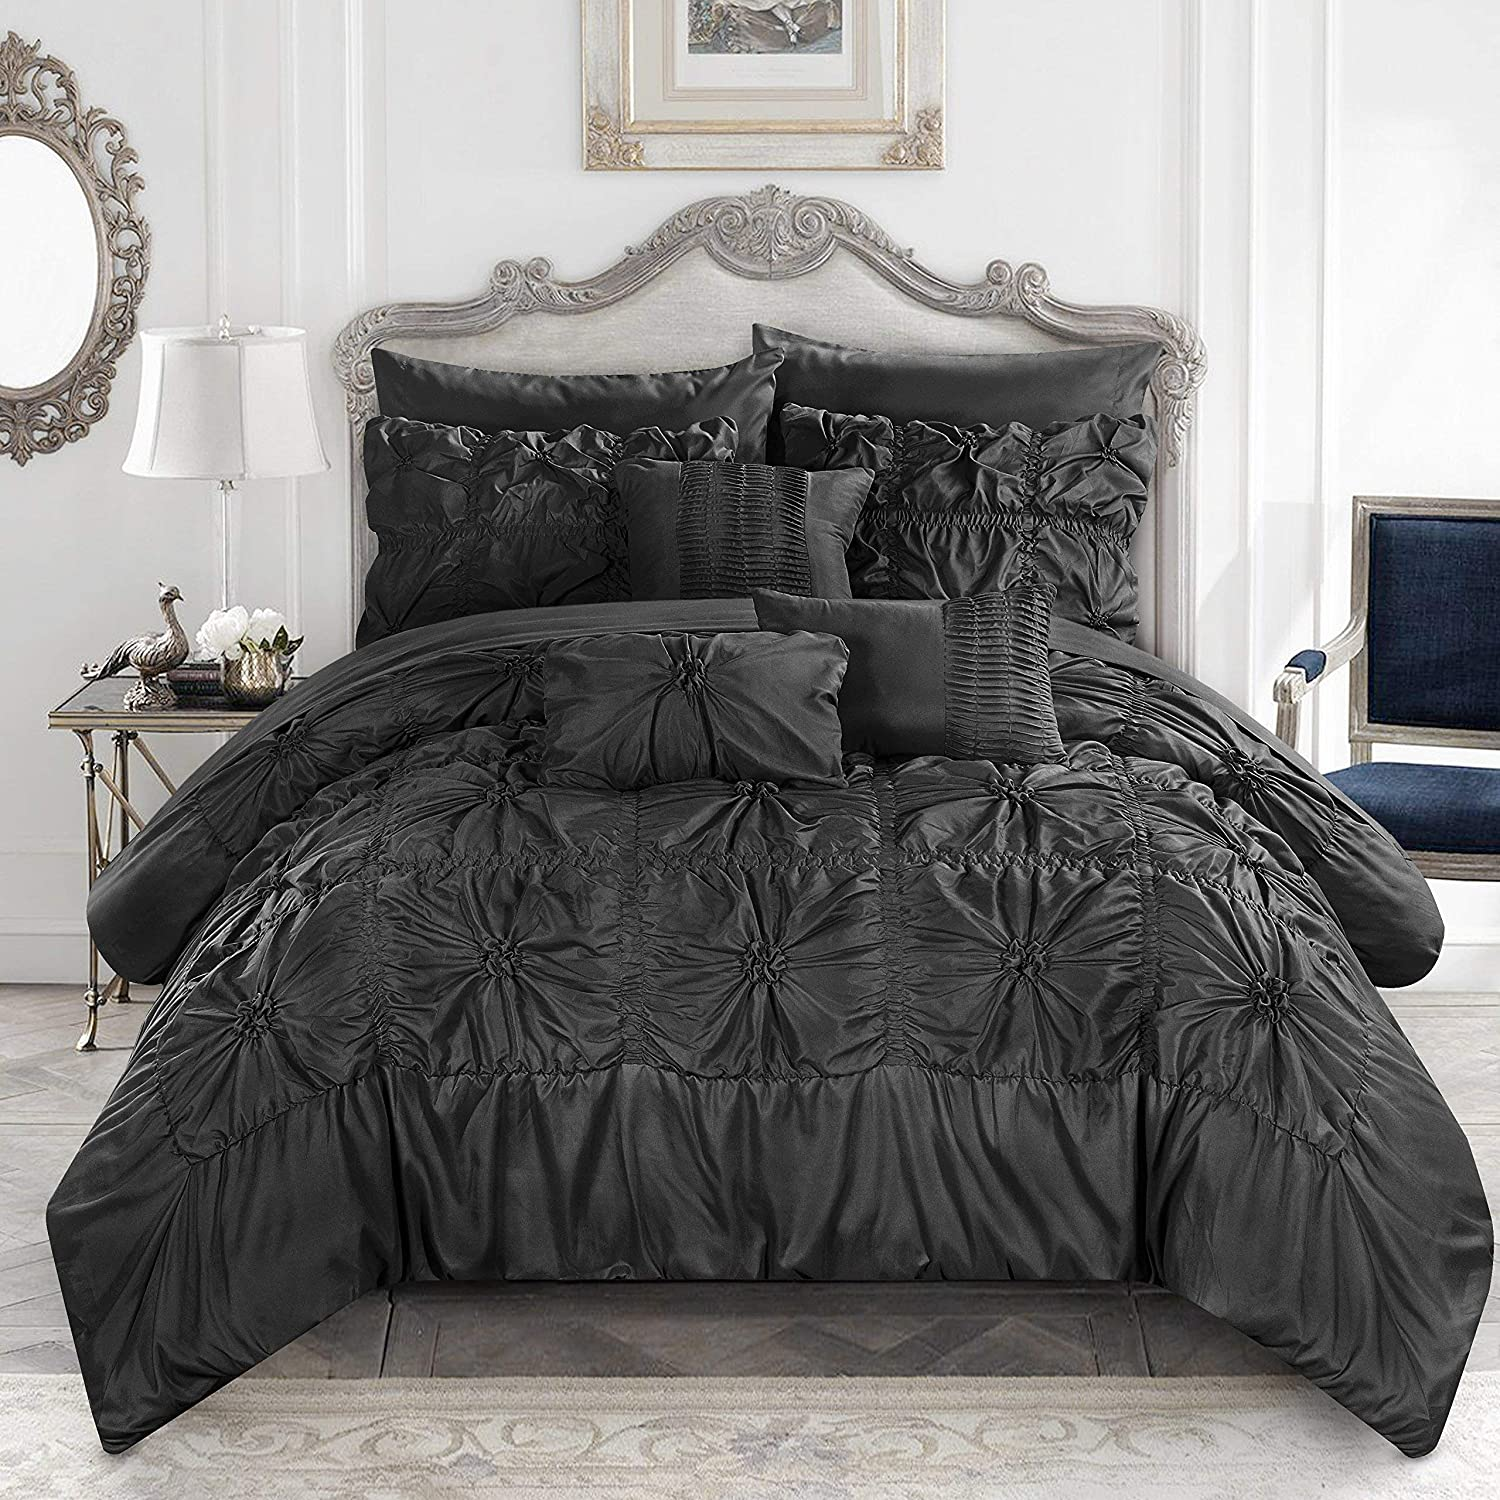 Chic Home Springfield 8 Piece Comforter Bed, Twin, Black